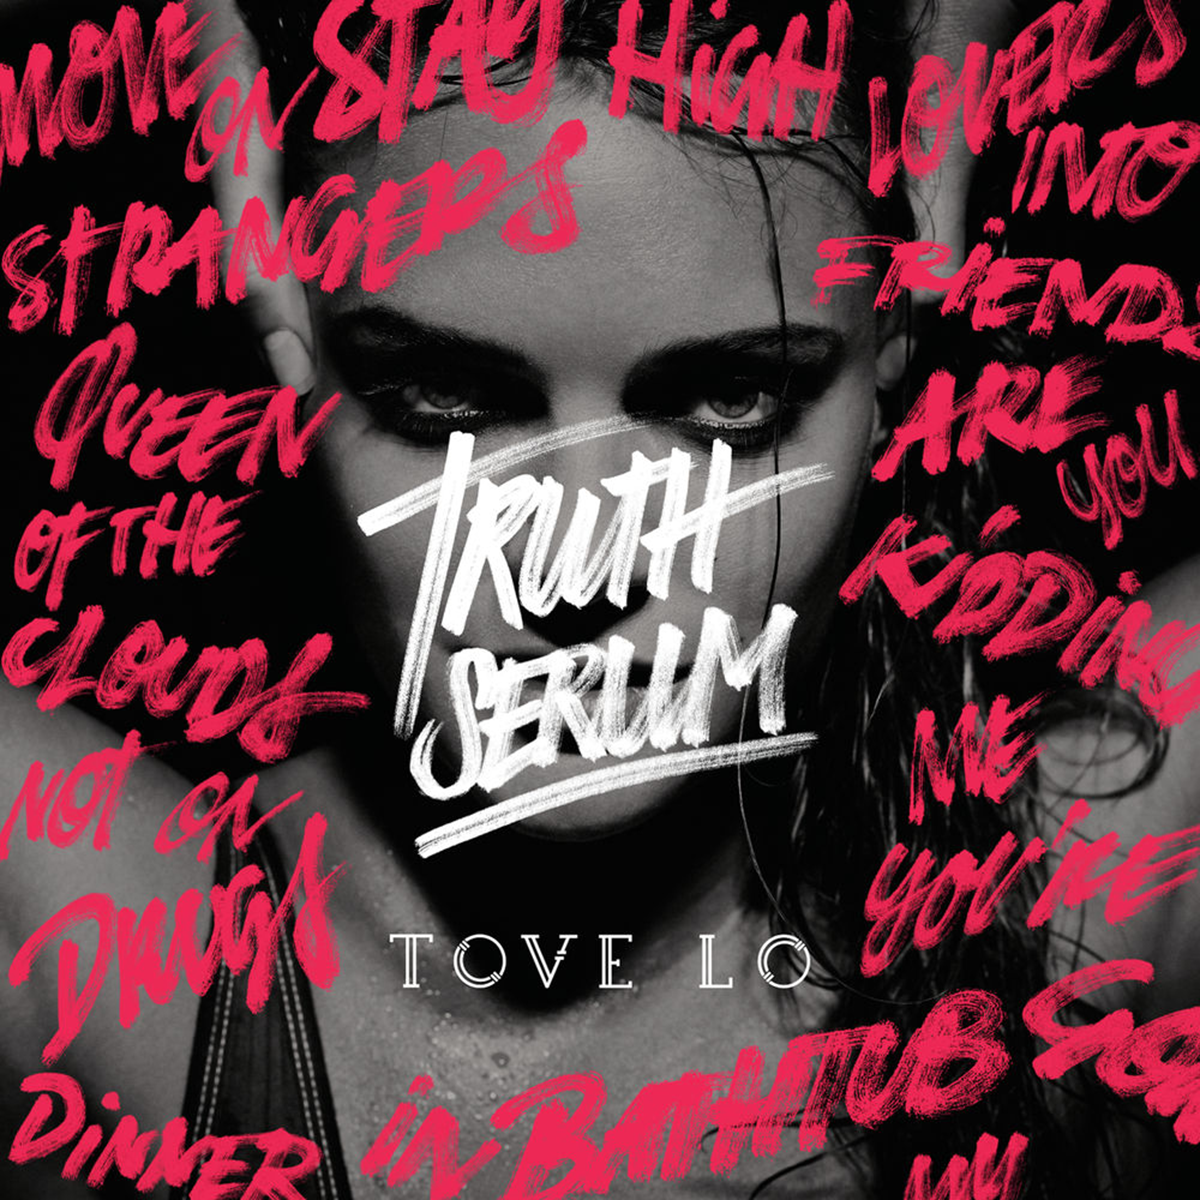 Tove-Lo-Truth-Serum-2014-1200x1200